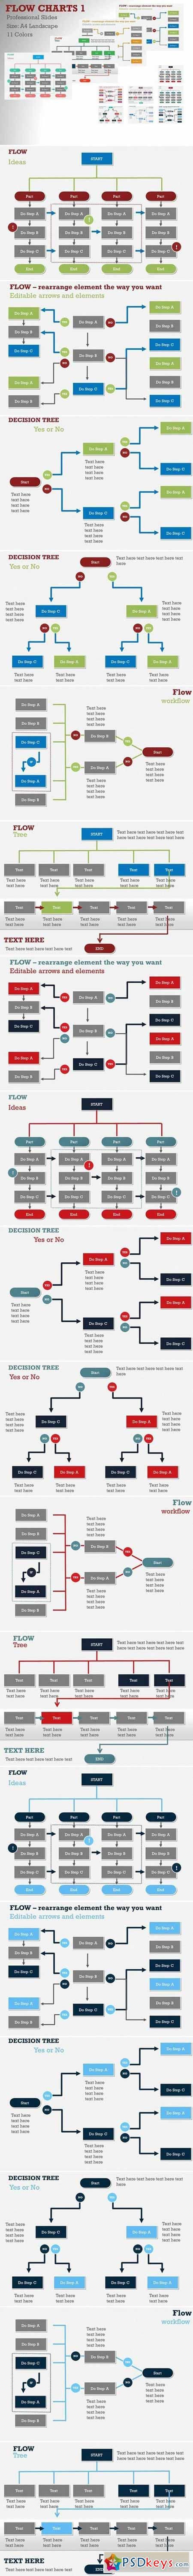 Flow Charts 1 PowerPoint Template 406958